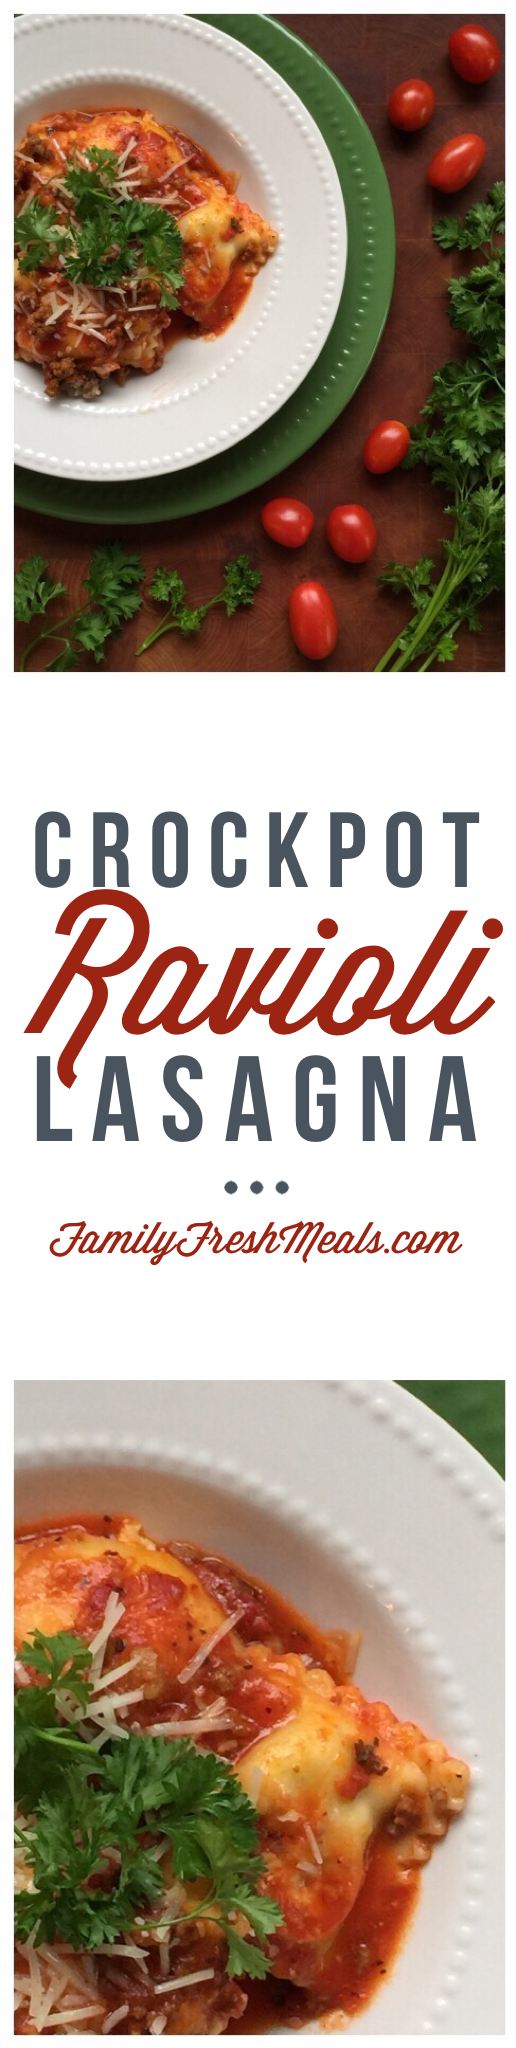 Easy Crockpot Lasagna Ravioli - Enjoy!